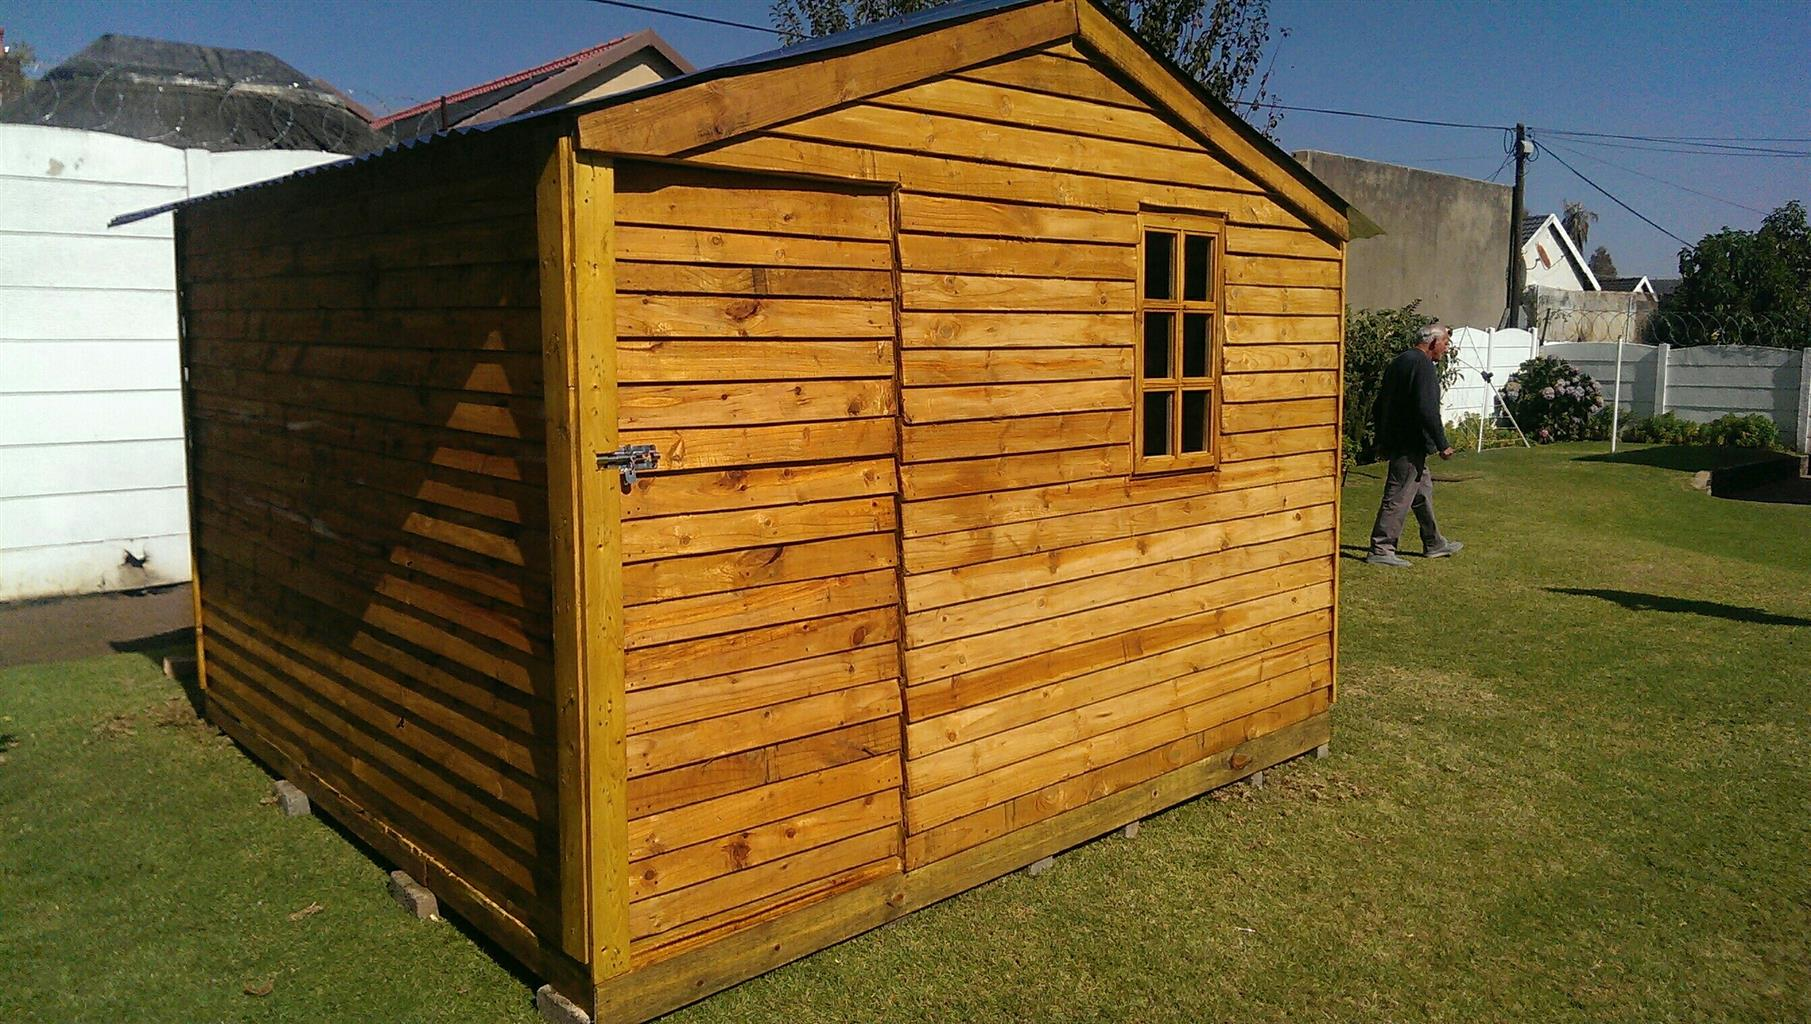 Skymax Construction : Wendy houses, tool sheds,log cabins